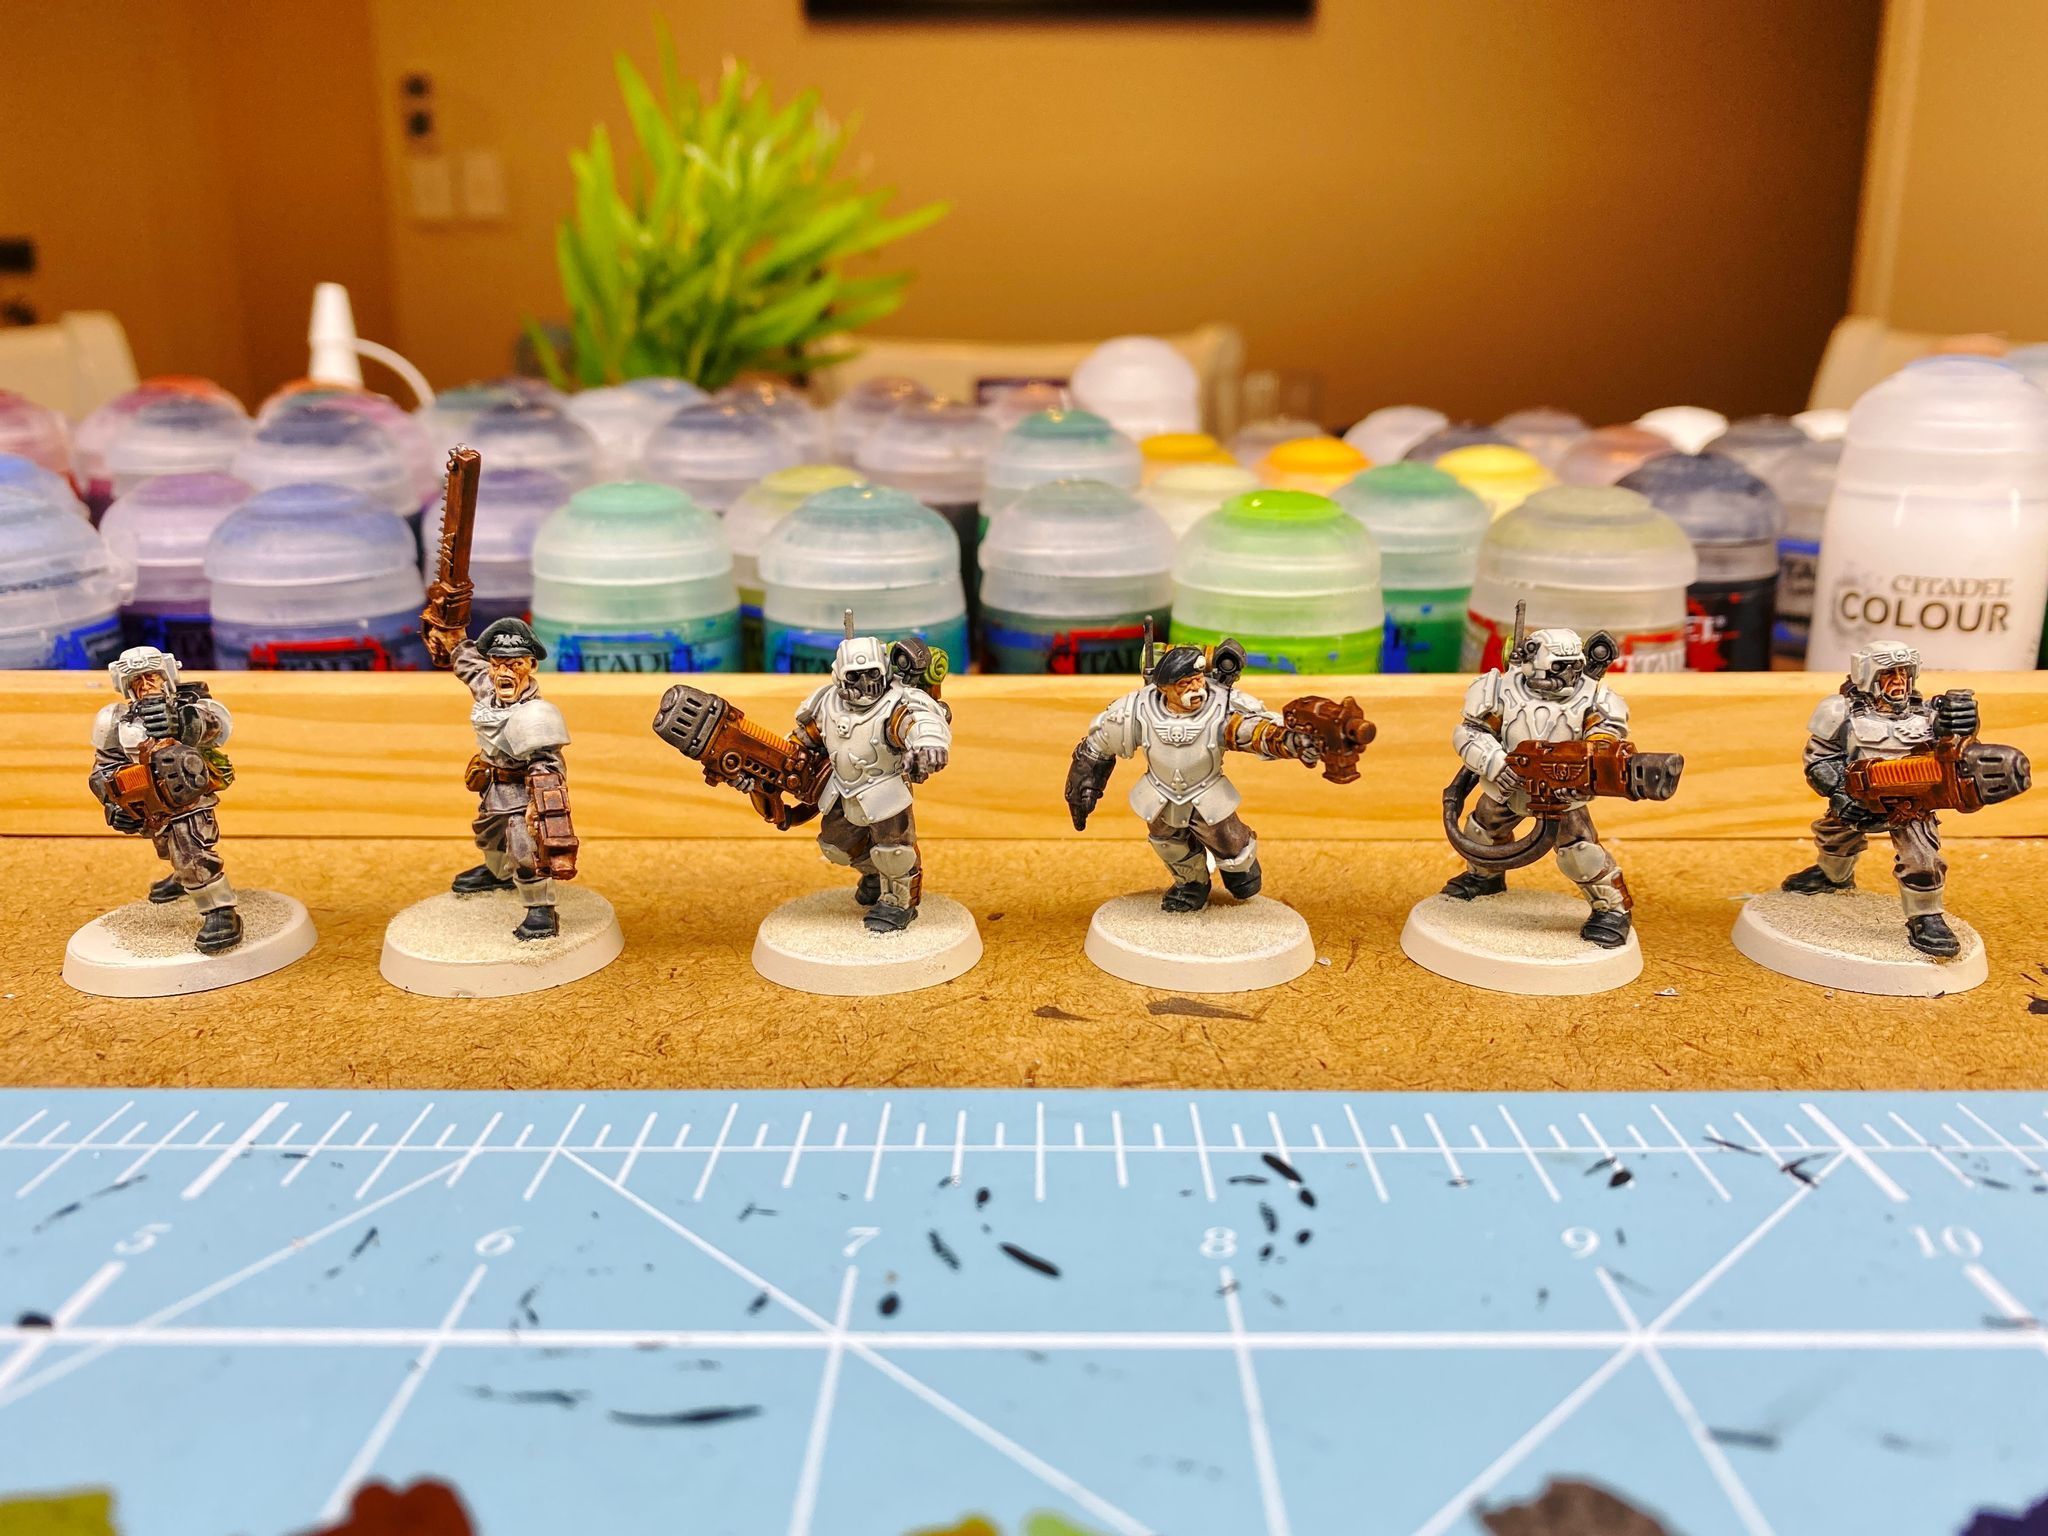 A photo of six mostly-painted guardsmen from Warhammer 40,000. Their armour is very light blue/grey, three of them are wearing heavy armour and one has a helmet, another is a sergeant with a beret and brandishing a chainsword, two more are holding very large plasma guns, as is one of the heavily-armoured ones. One of the heavily-armoured ones has a beret and a sweet handlebar moustache.